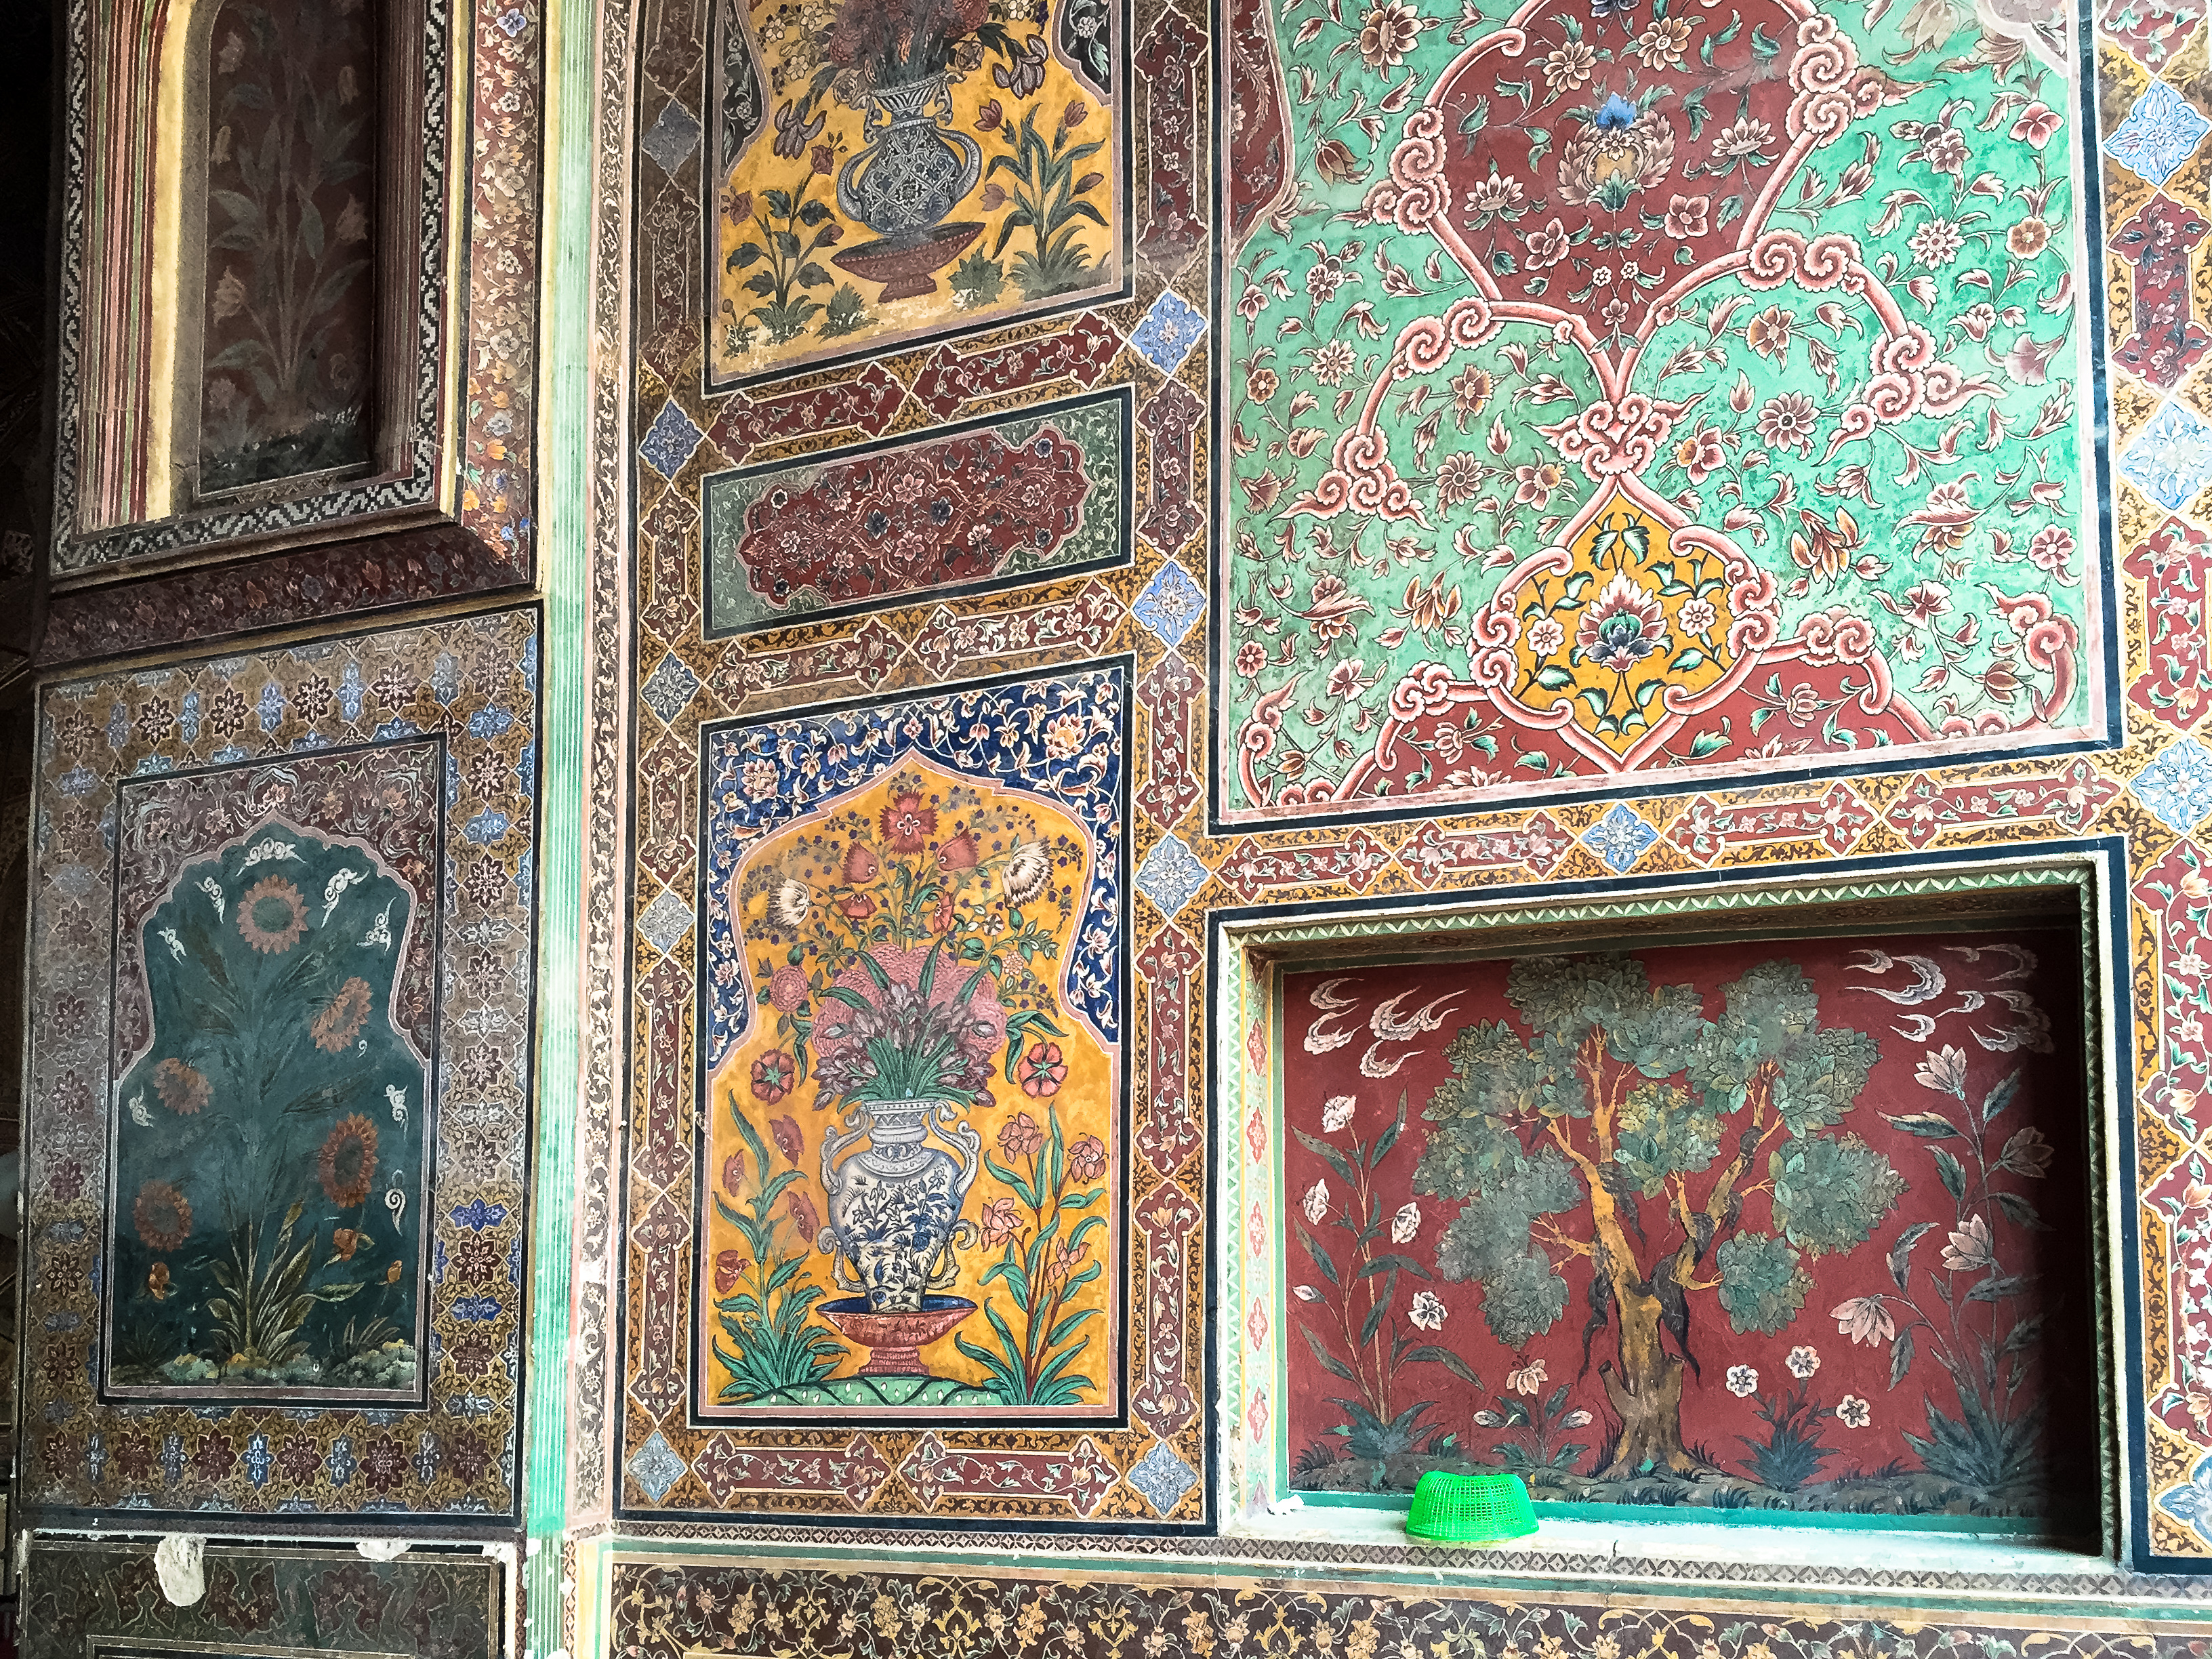 exploration of mosque and masjid essay Conservation activities of old traditional mosque in malaysia: an overview s johar, ag ahmad  masjid jamek in kuala lumpur, tengkera mosque in malacca, statues and other  documents.